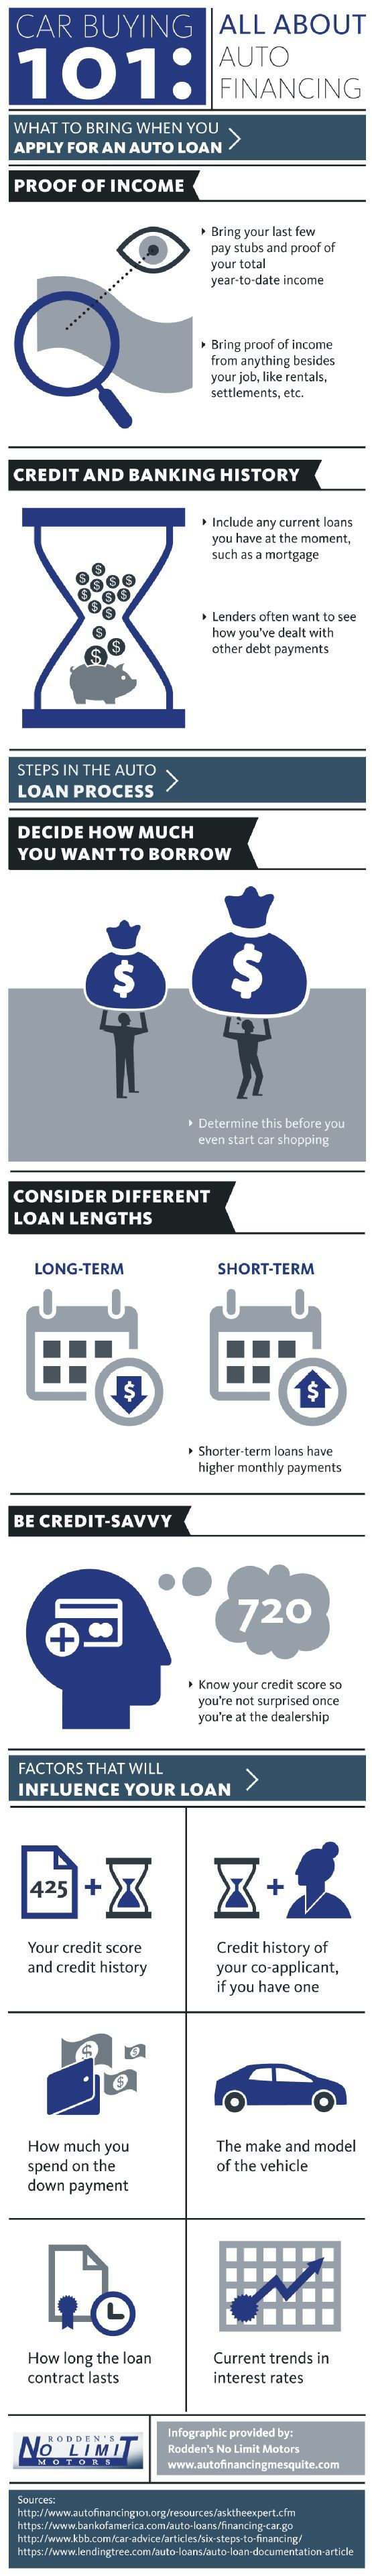 The first step in the auto loan process is deciding how much you want to borrow